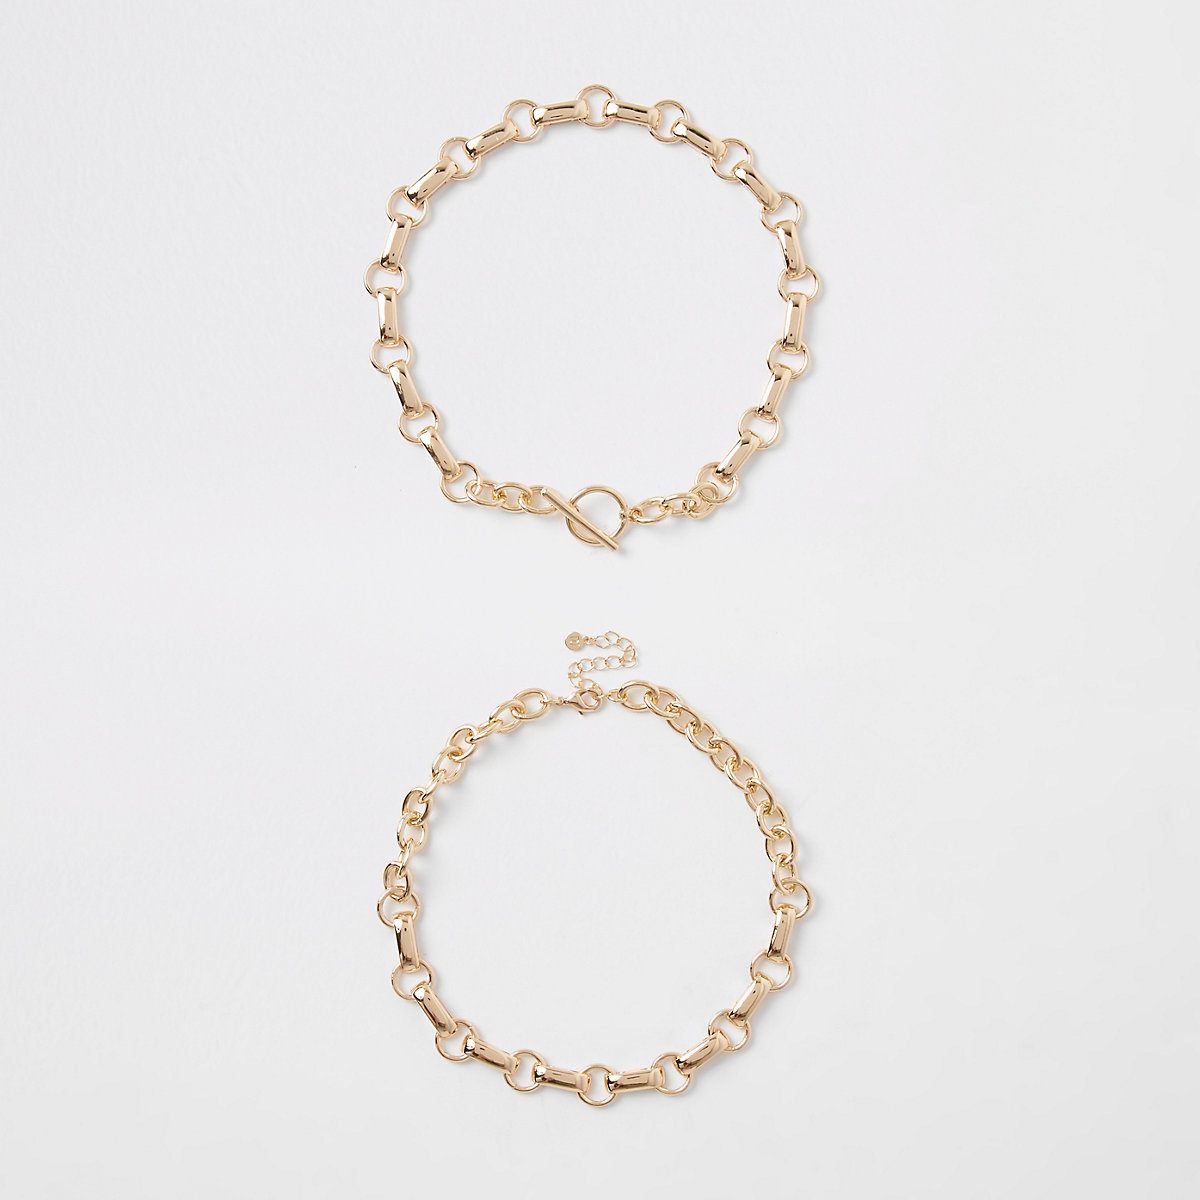 Gold color chain link T bar necklace